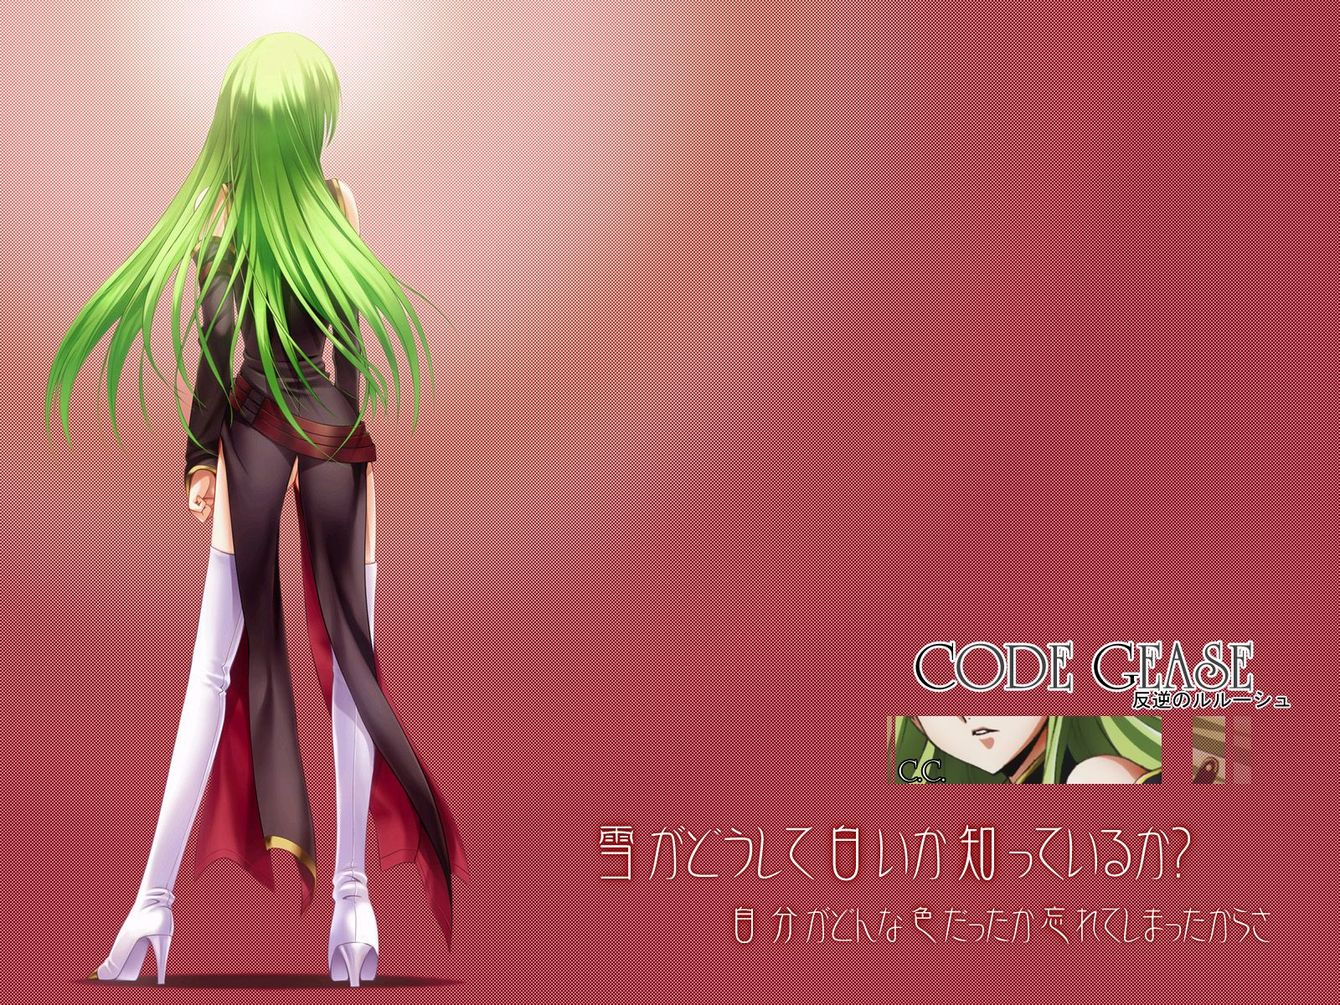 Konachan.com - 42273 cc code_geass green_hair red